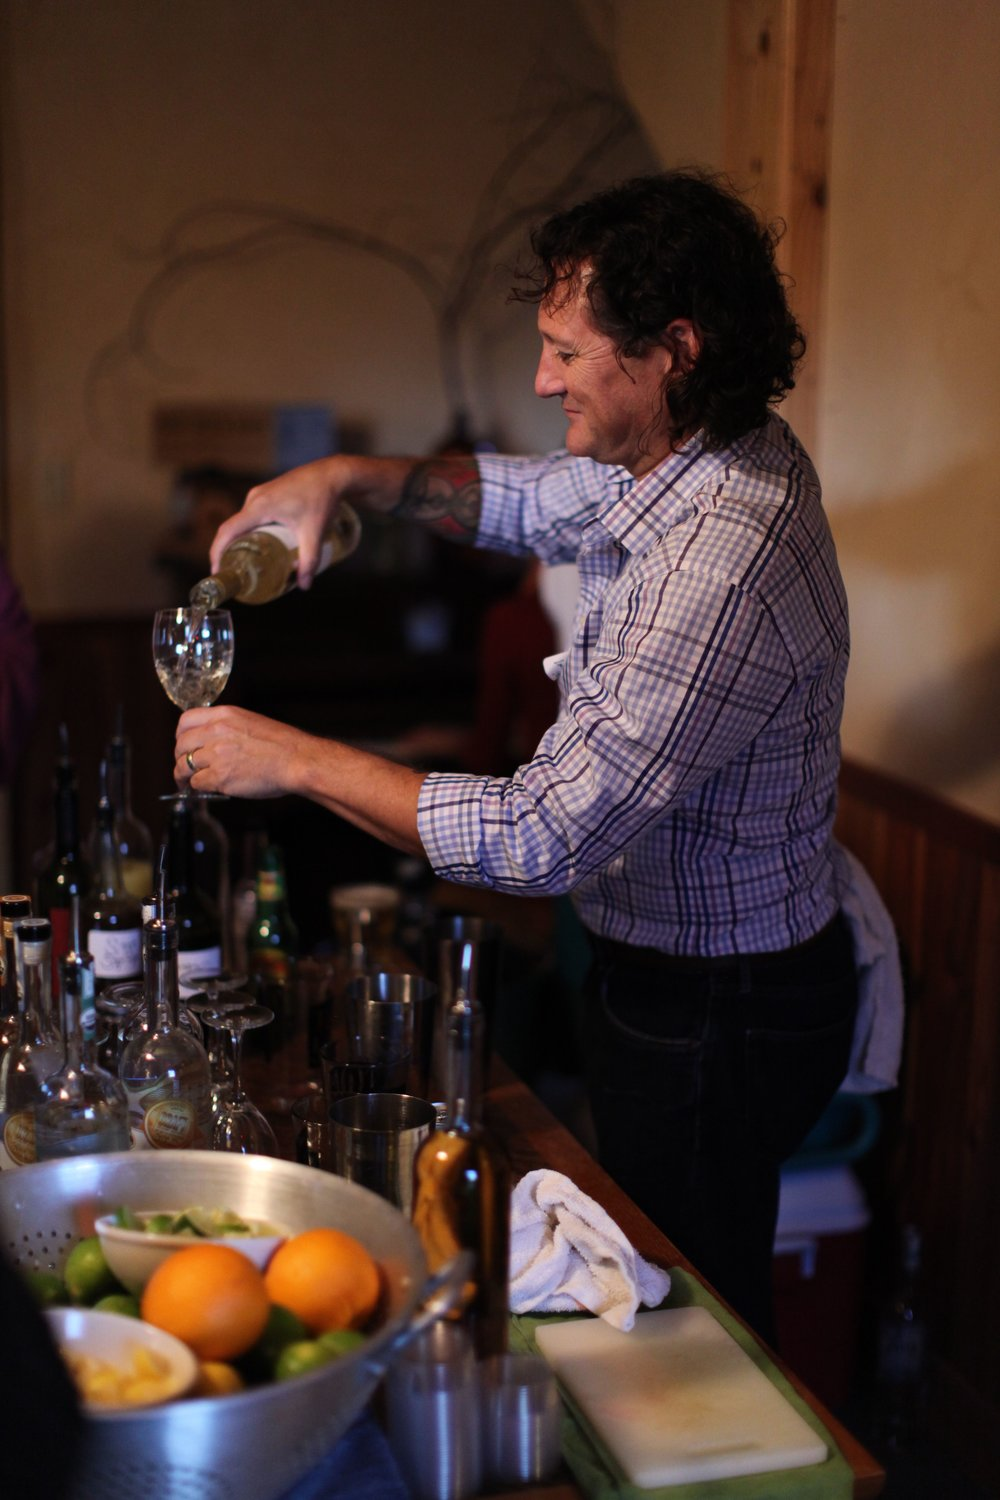 esteban pouring wine.jpg